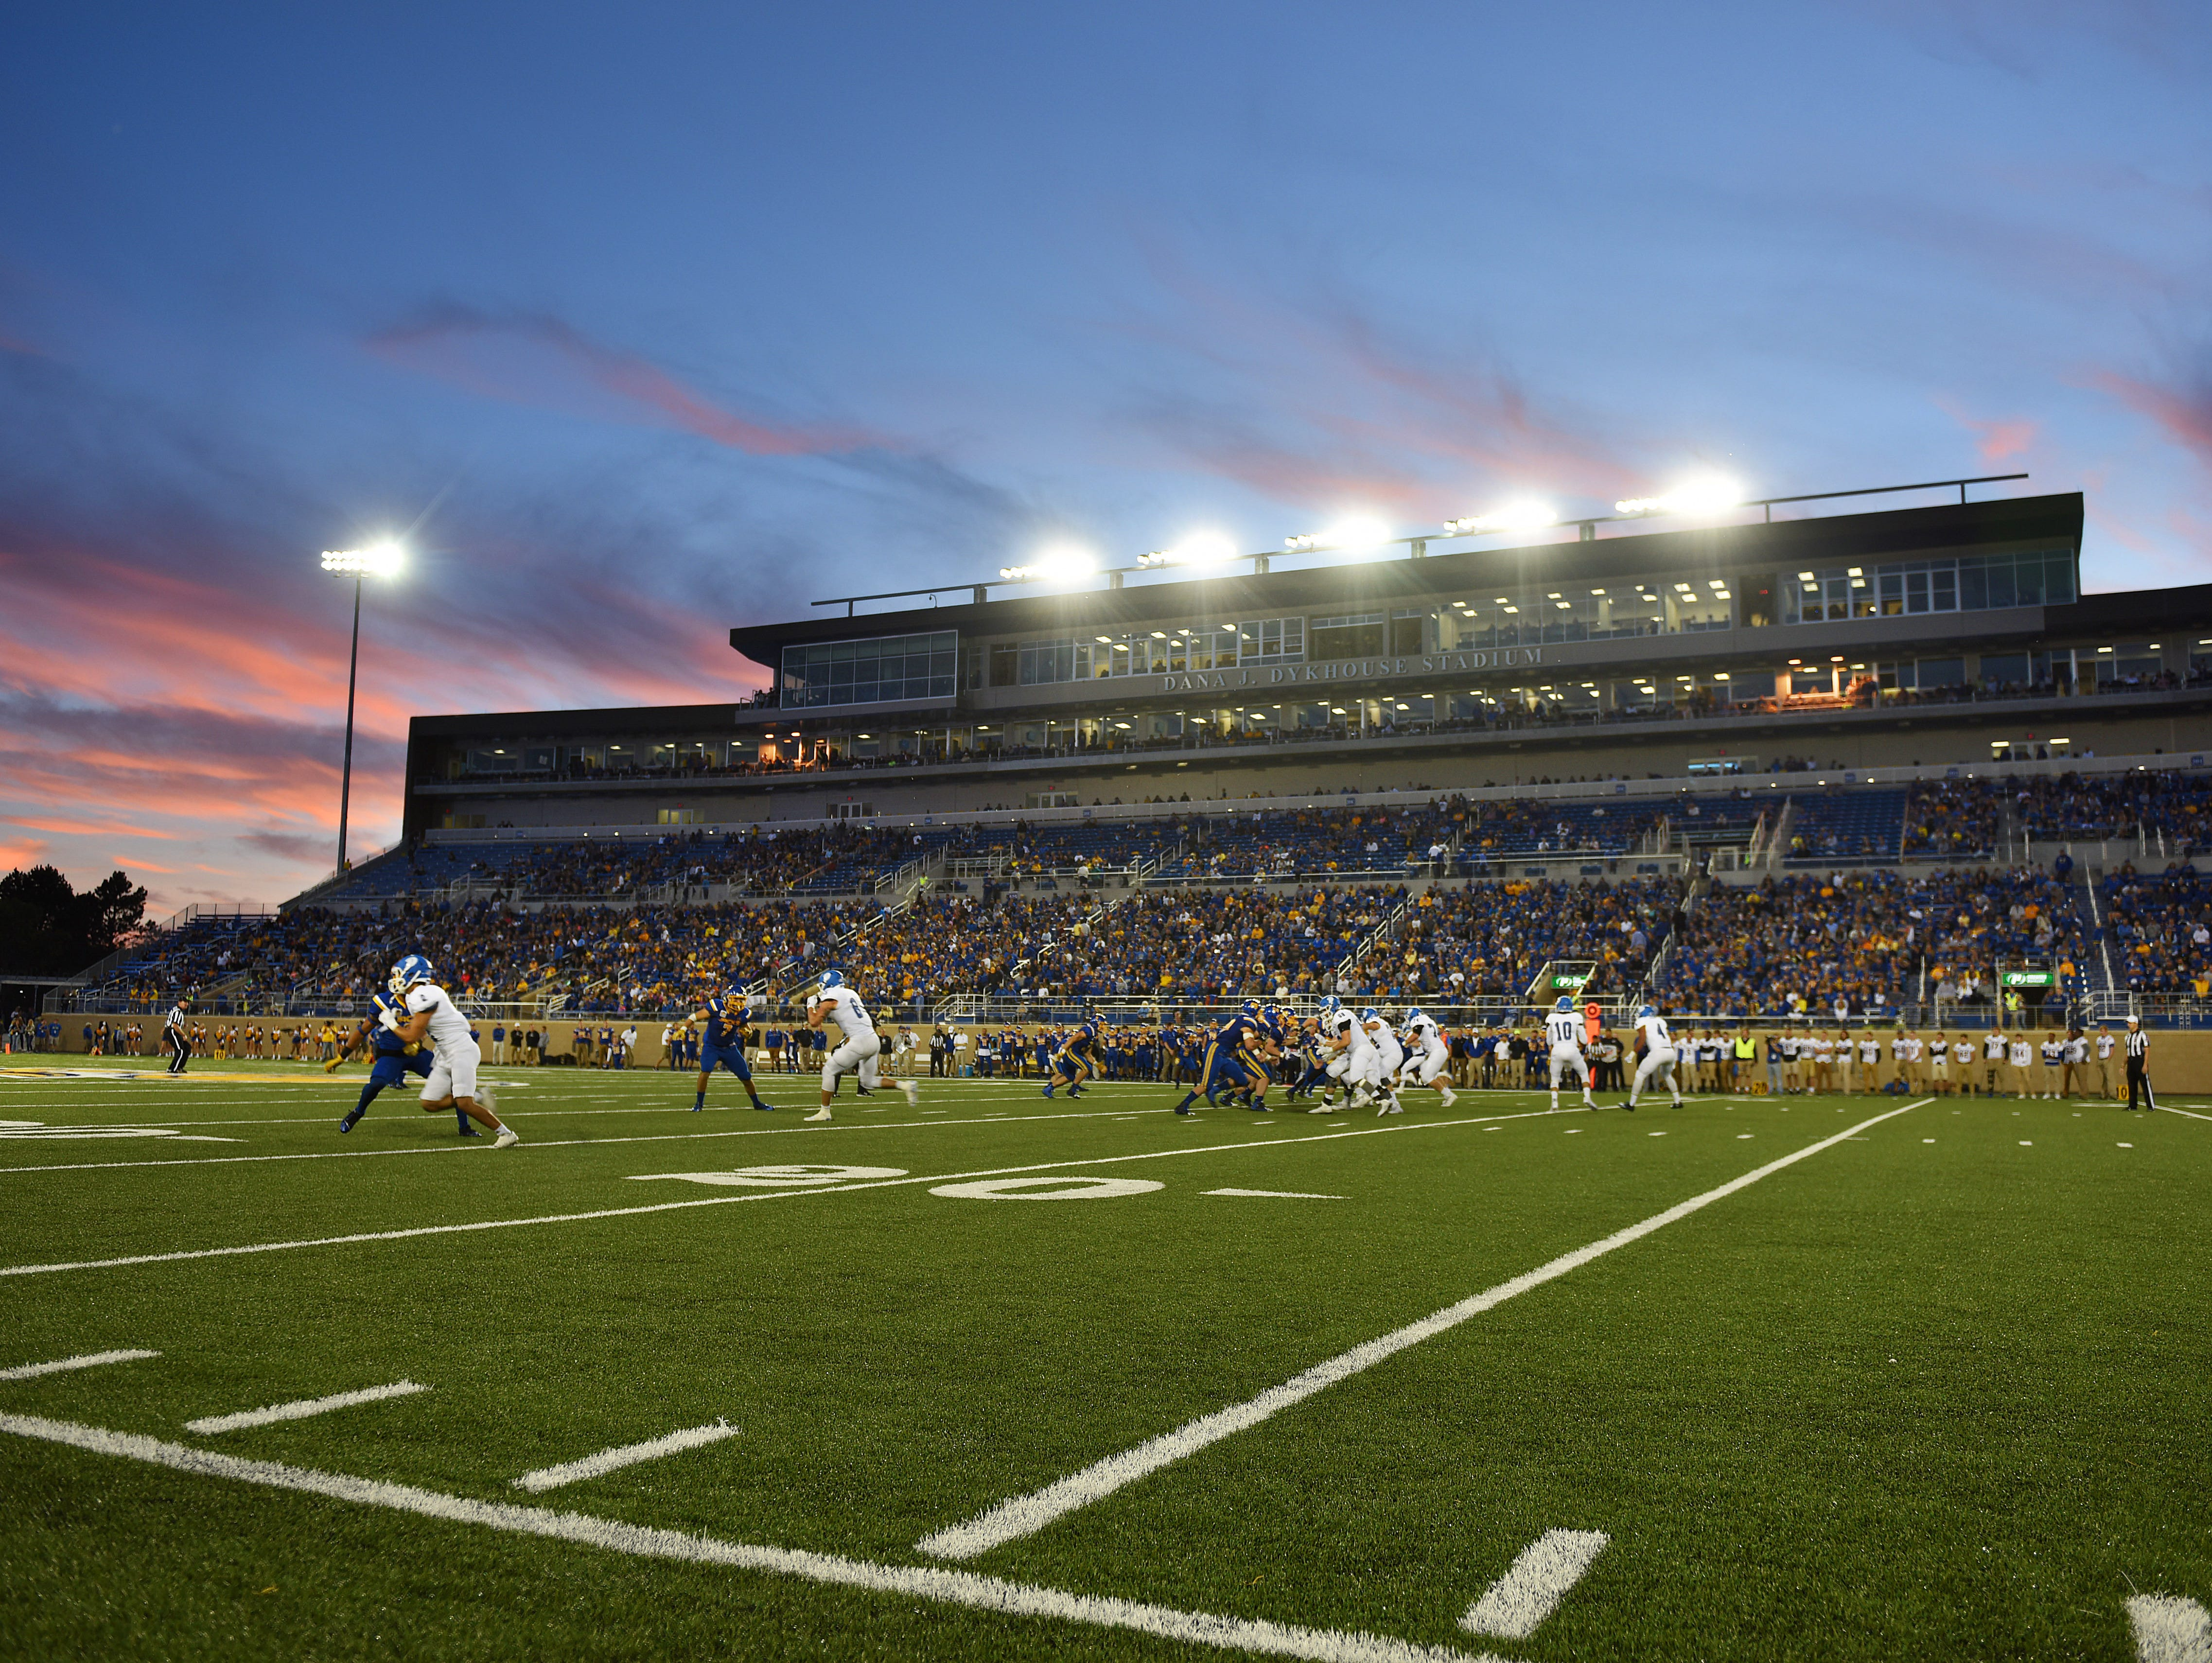 A crowd fills the stands at Dana J. Dykhouse to watch the Jackrabbits take on Drake University in Brookings on Saturday.